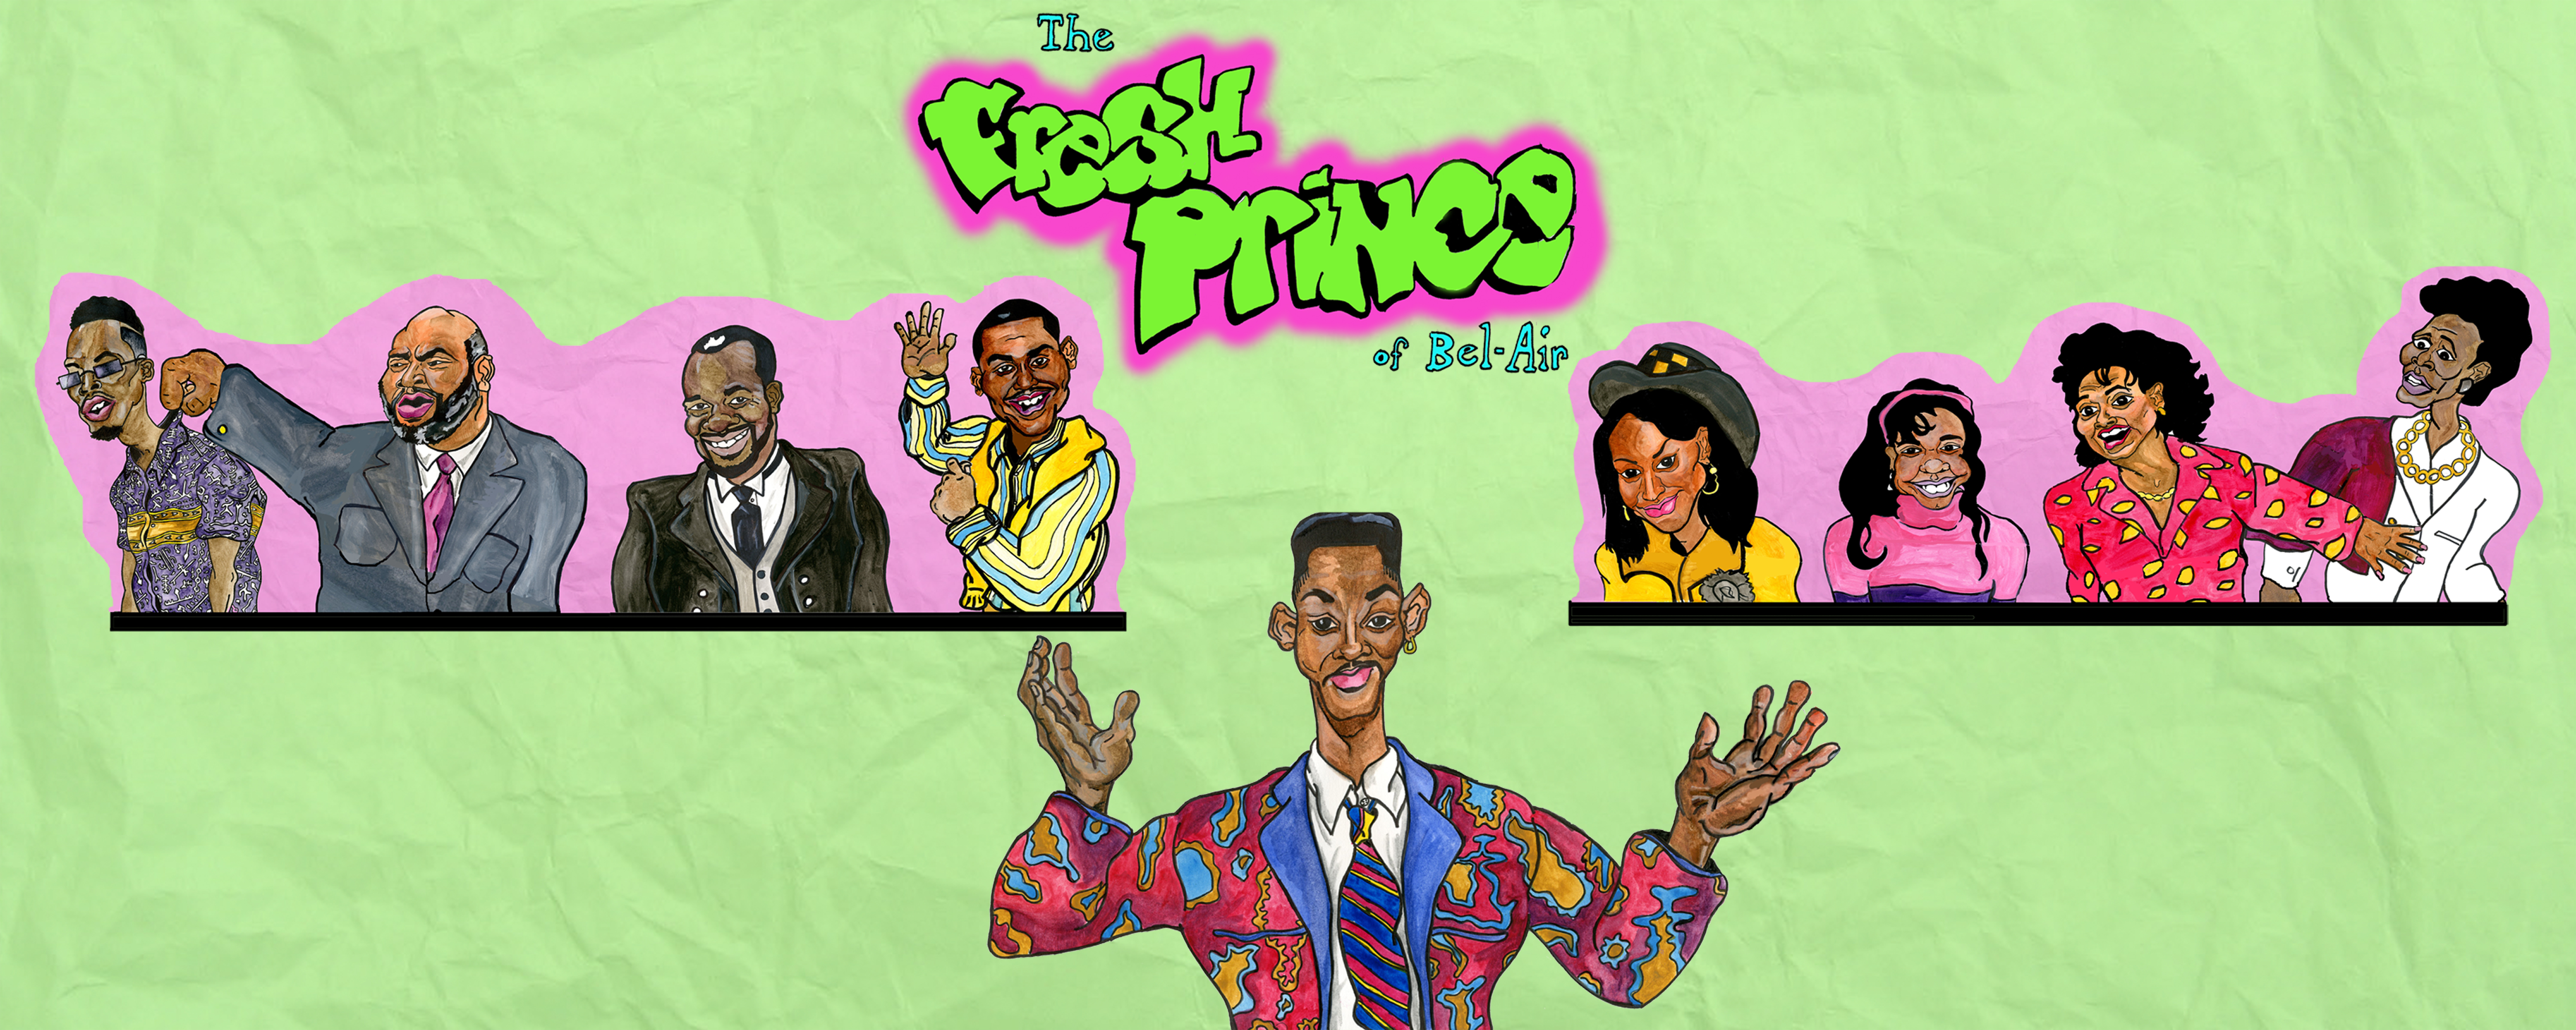 """fresh prince of bel air Welcome to freshprinceofbelaircom – an unofficial fresh prince fan site here you'll find the theme song (including the opening theme video, mp3 download, ringtone download and lyrics), episode guide, cast, memorable quotes, info on the real-life fresh prince house, video clips of bloopers and behind the scenes, trivia games, the infamous """"carlton dance"""", will smith's pickup lines ."""